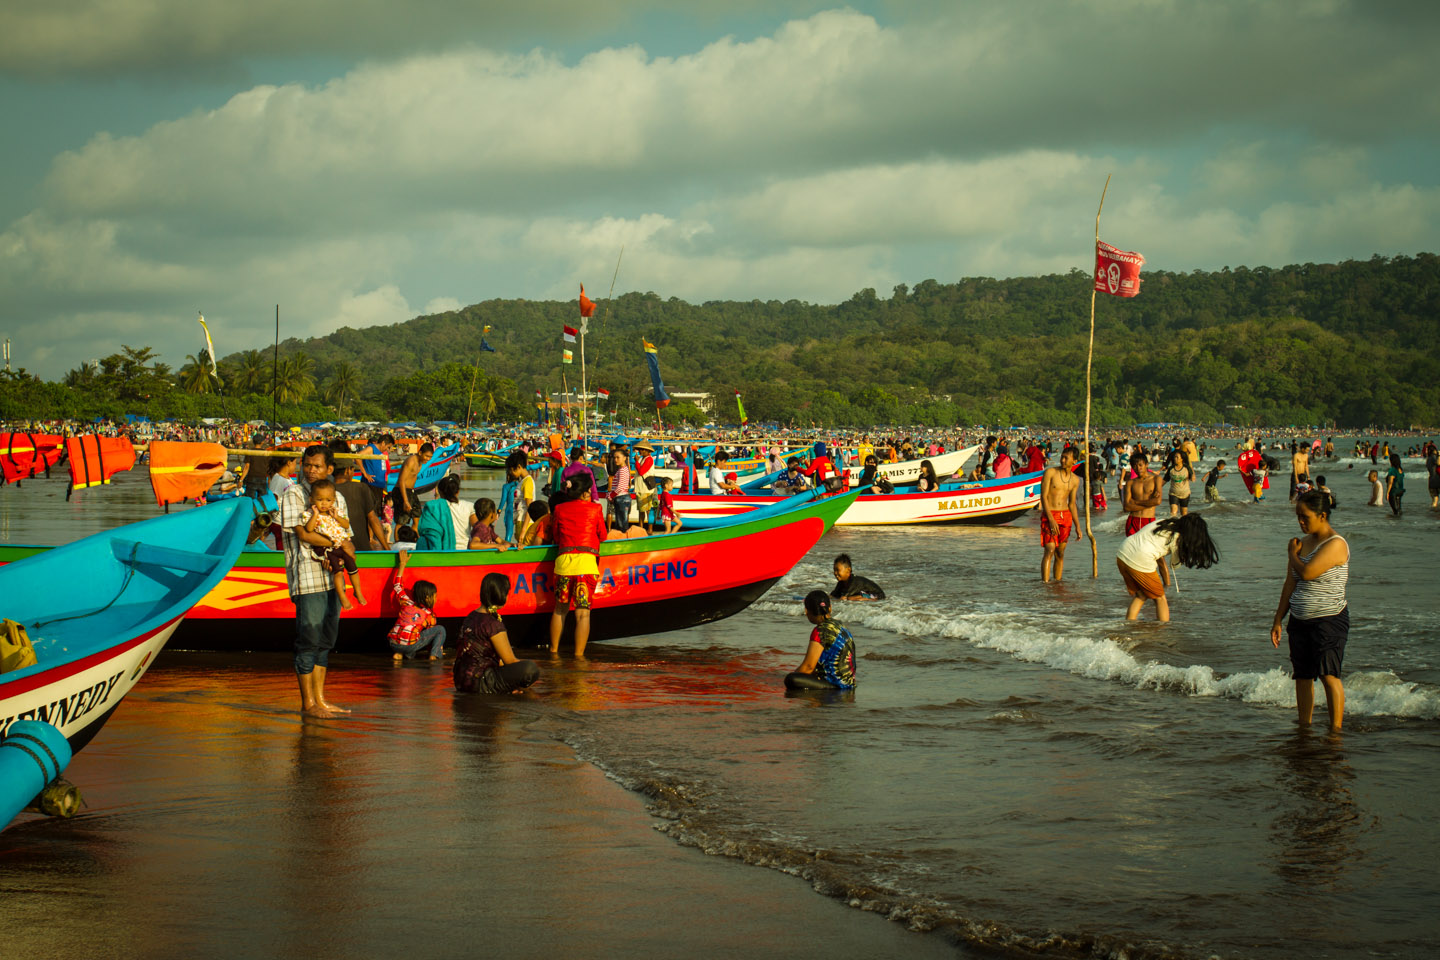 Crowded surfing beach with traditional wooden boats Pangandaran Java boat trip